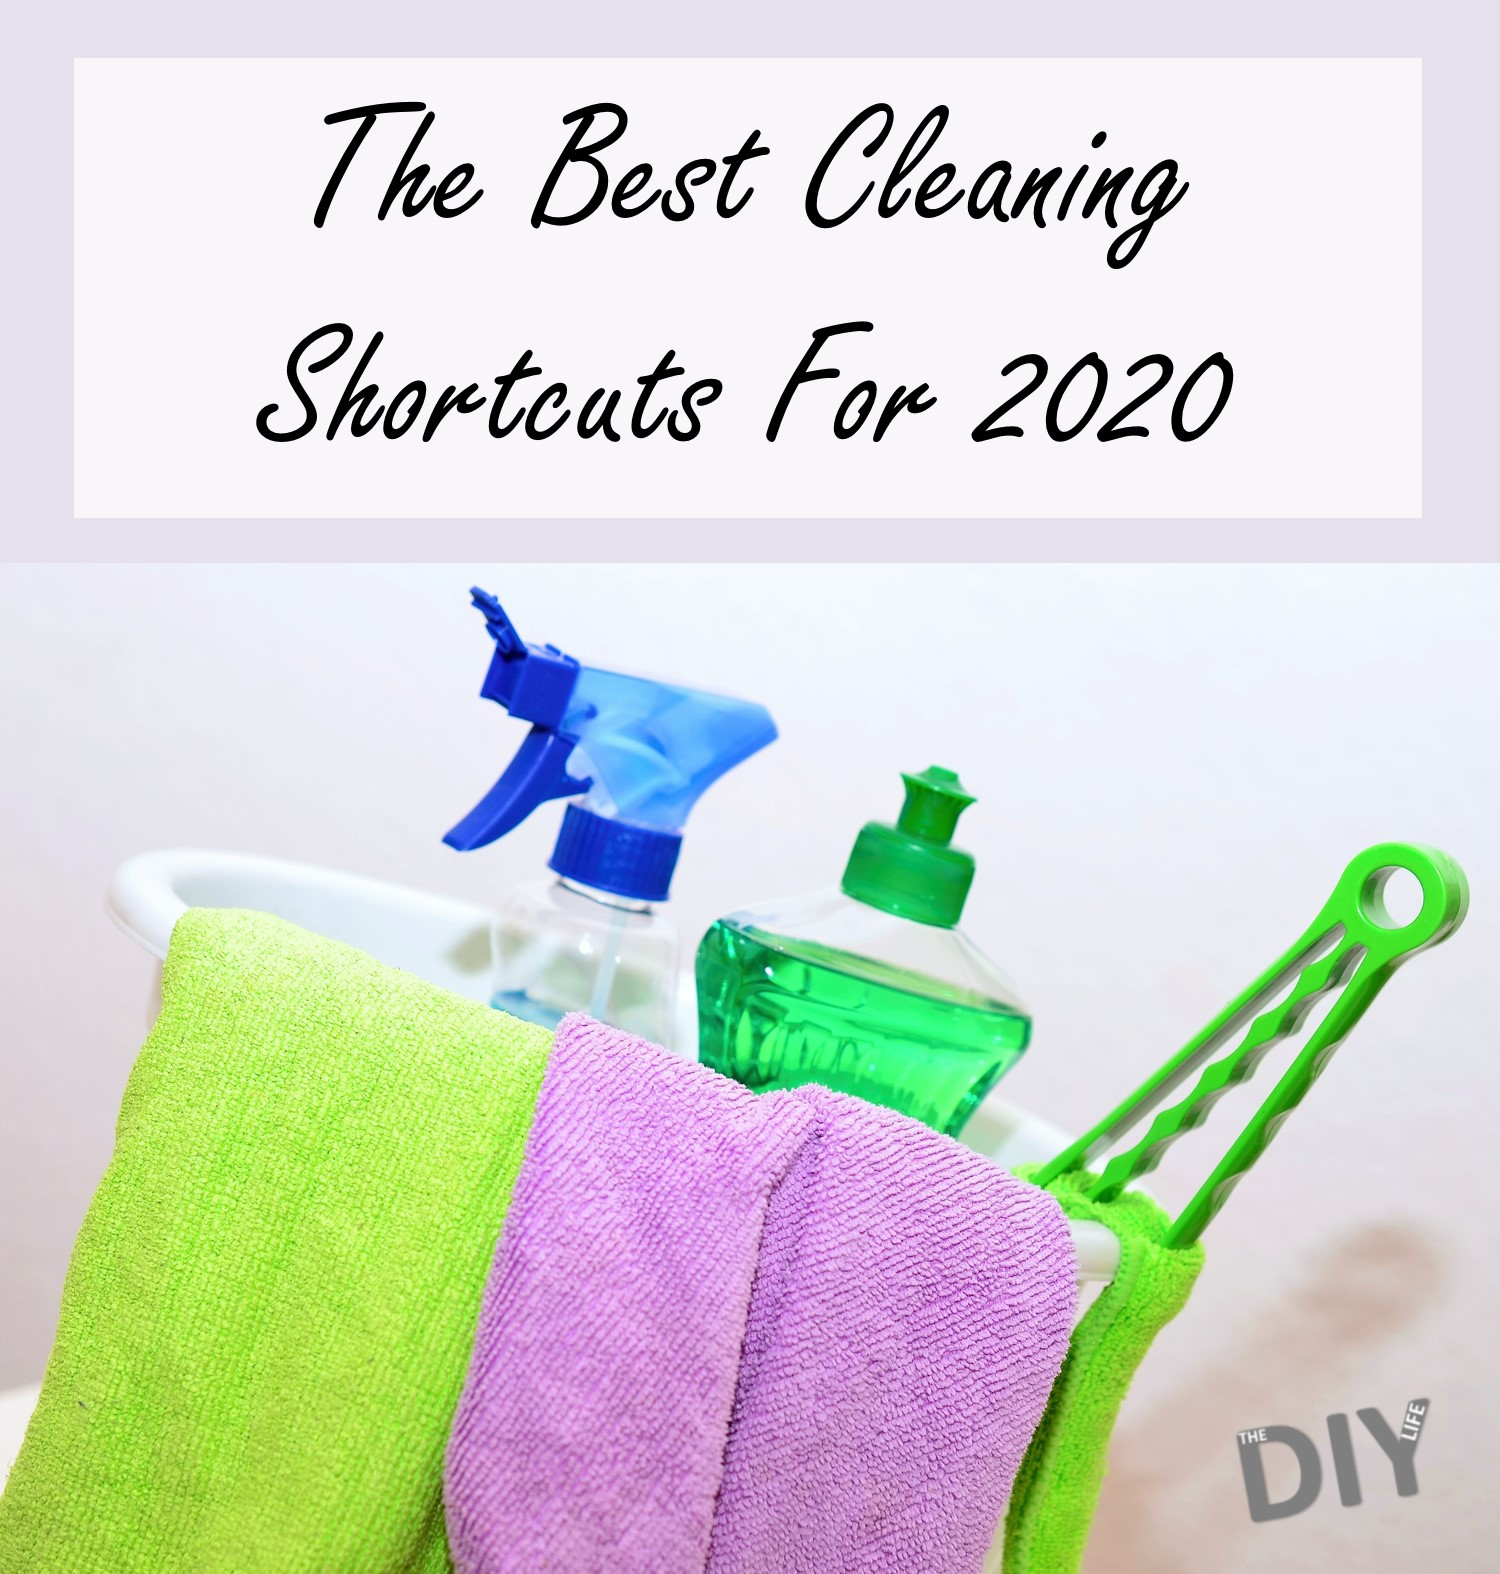 The Best Cleaning Shortcuts For 2020